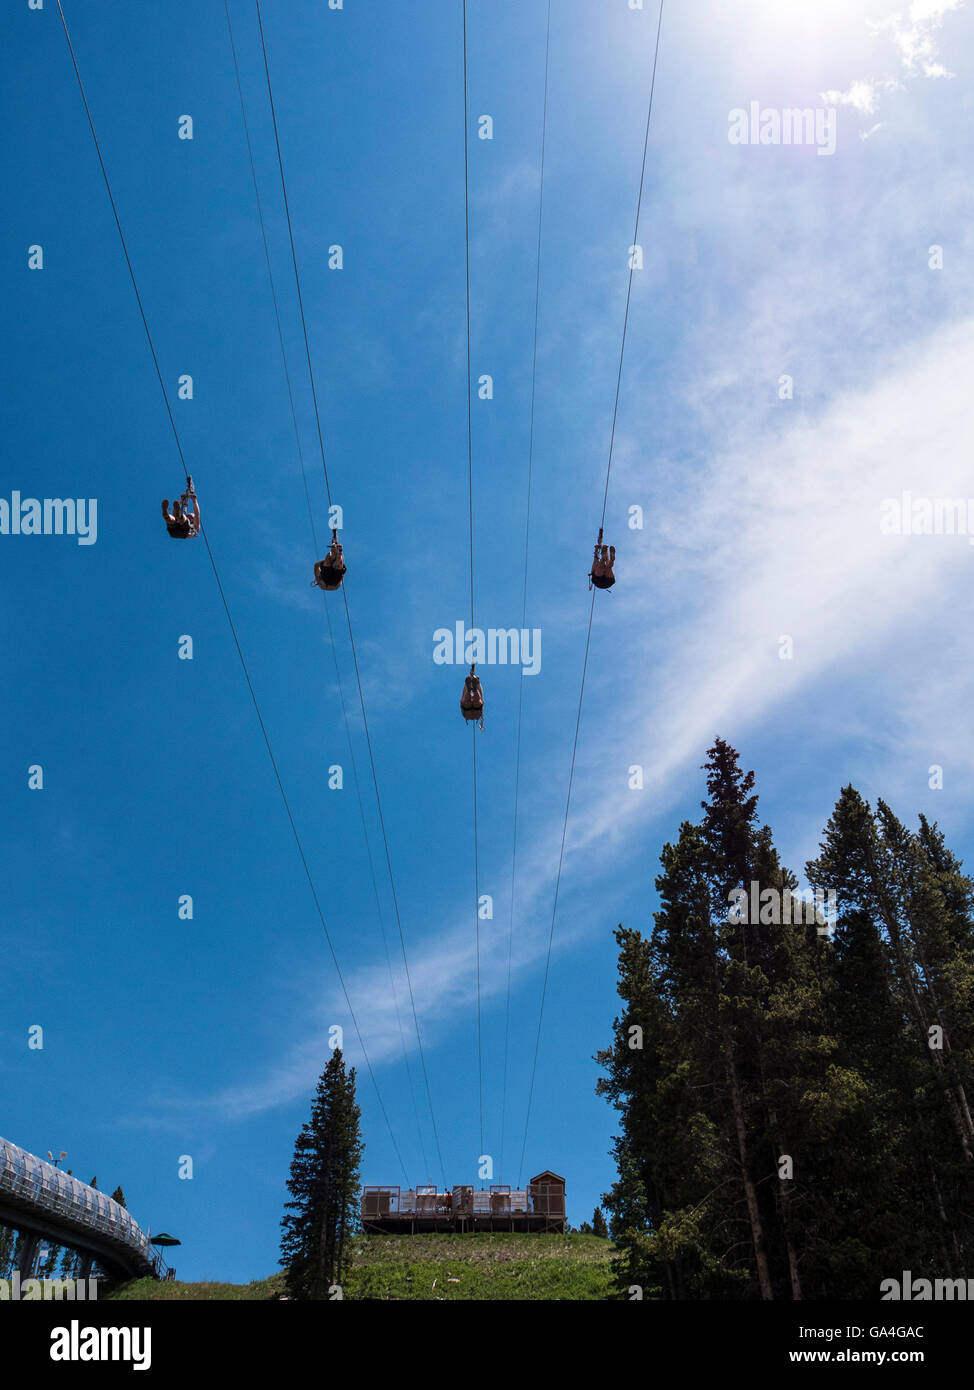 Golden Eagle Zipline, Epic Discovery center at Eagle's Nest, Vail Ski Resort, Vail, Colorado. - Stock Image